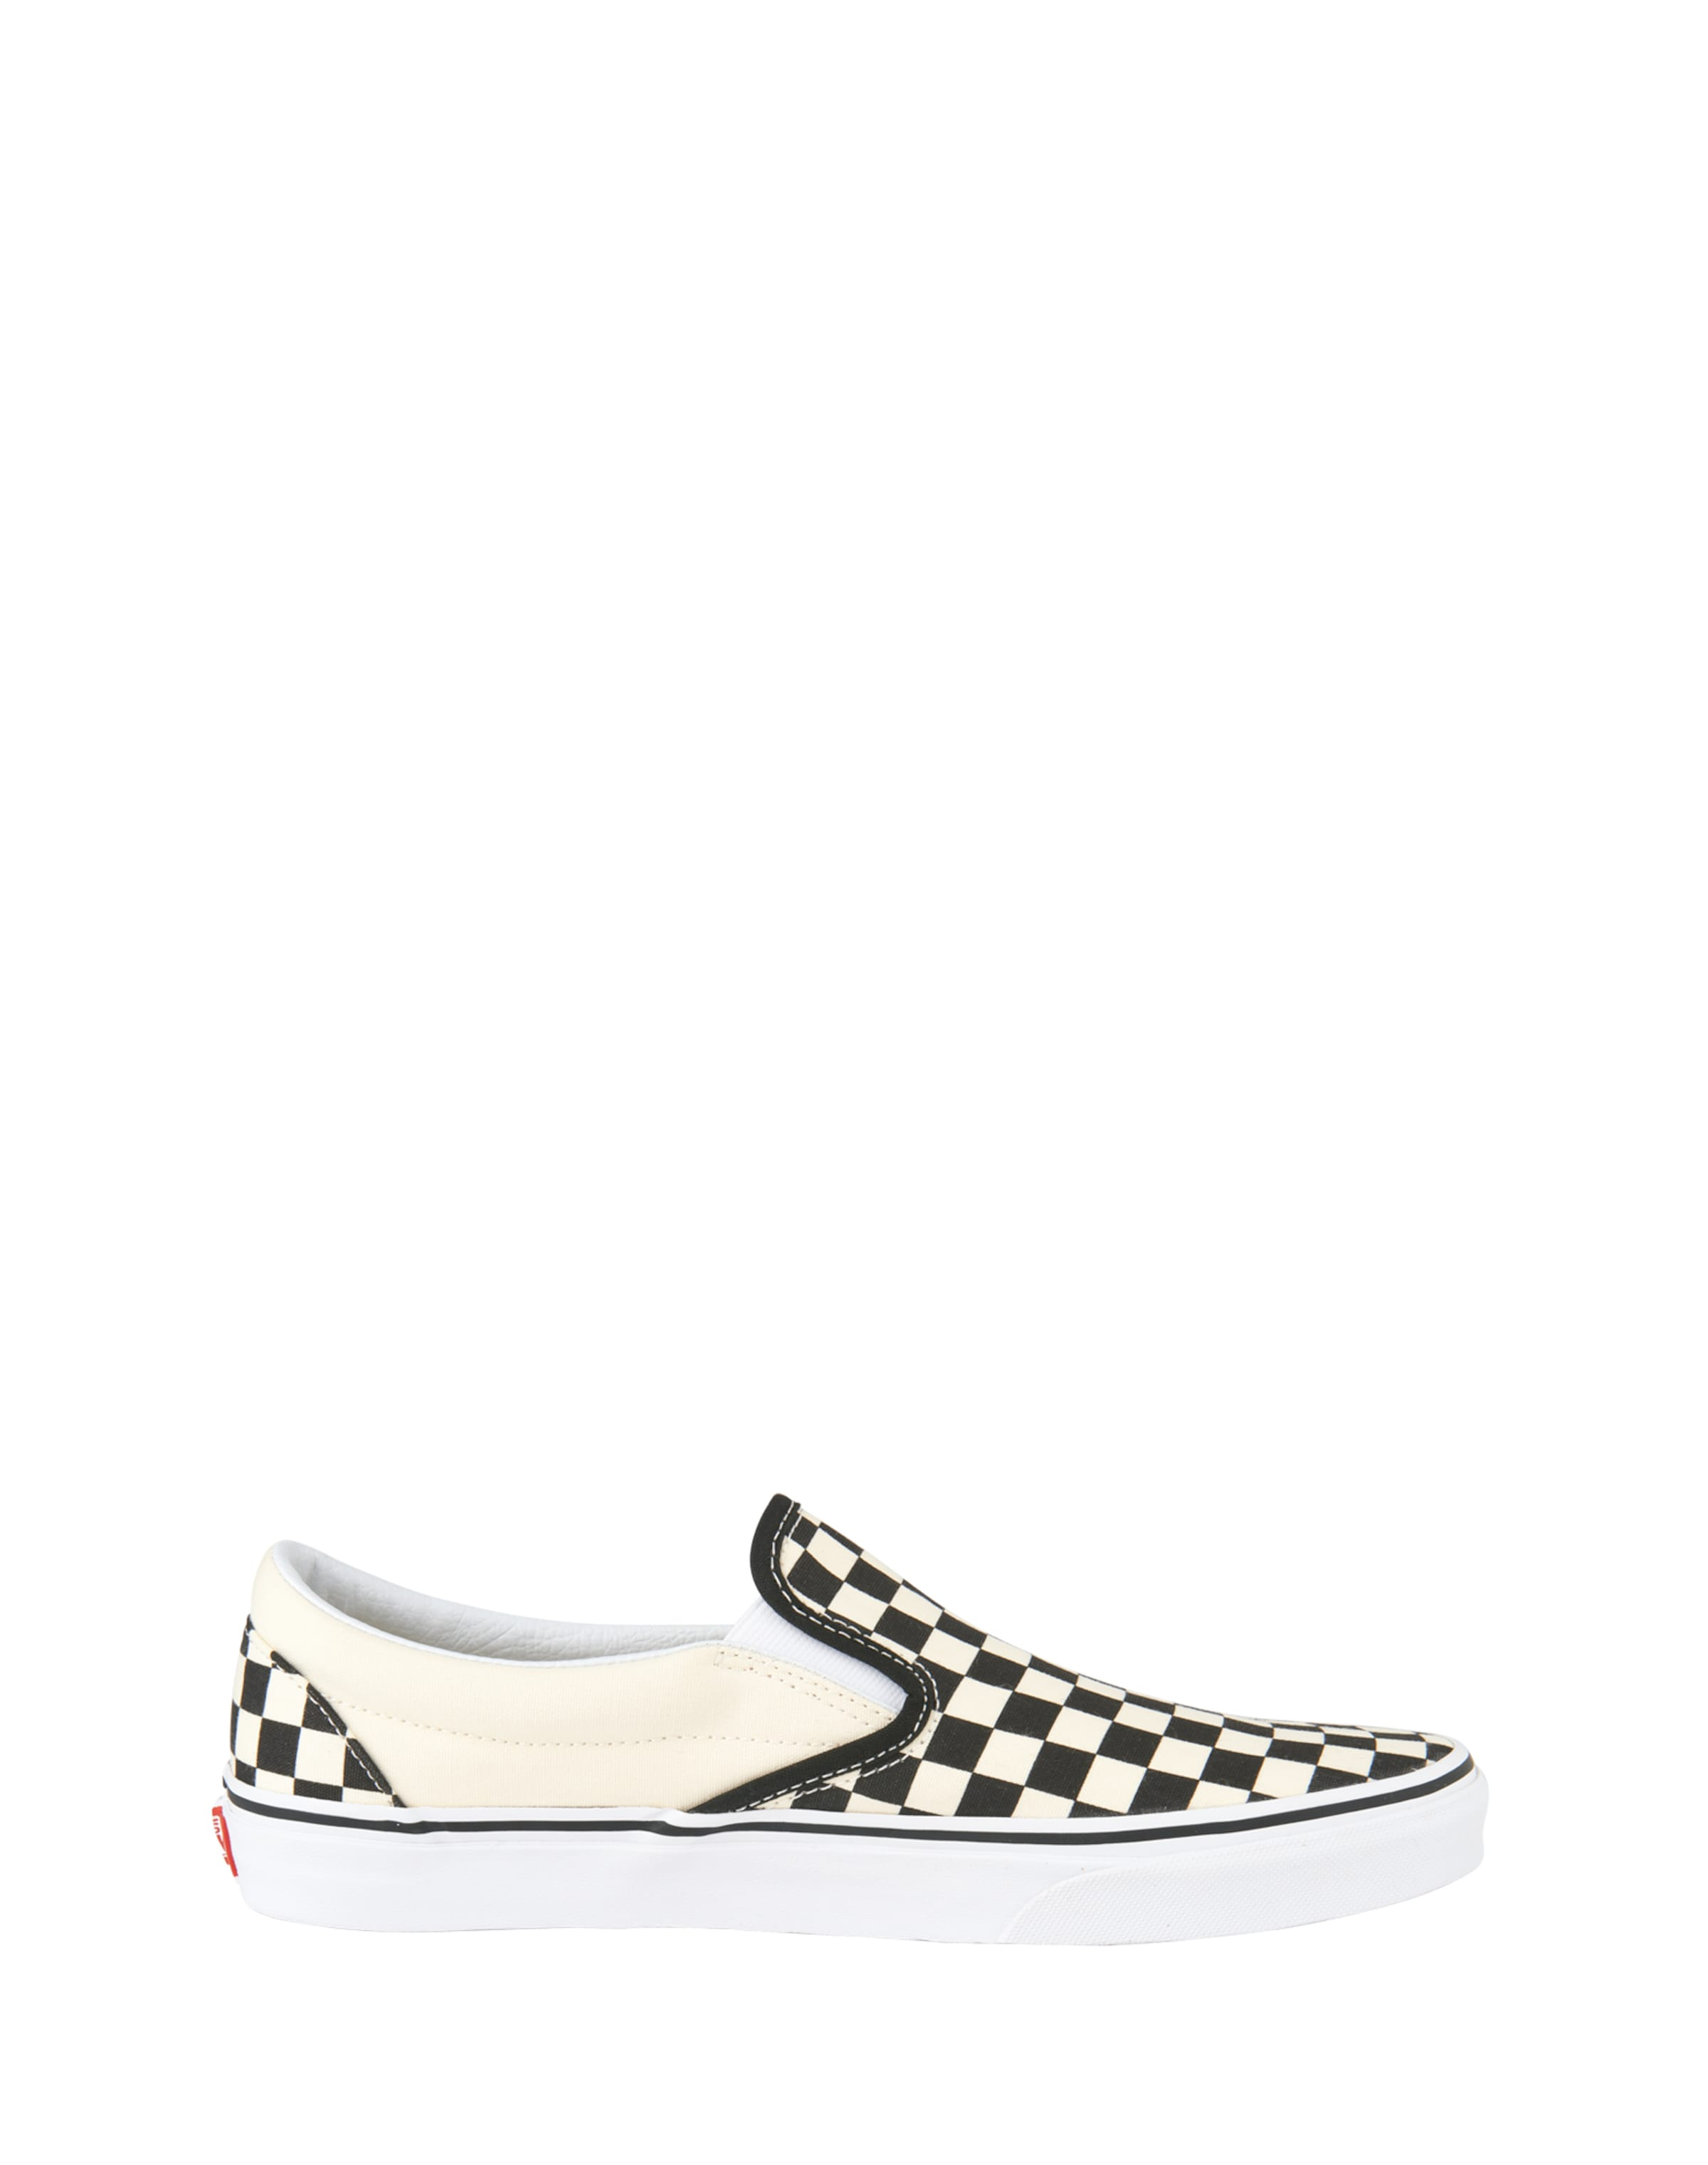 CremeSchwarz Slip Vans 'classic In Slipper on' T1cFlKJ